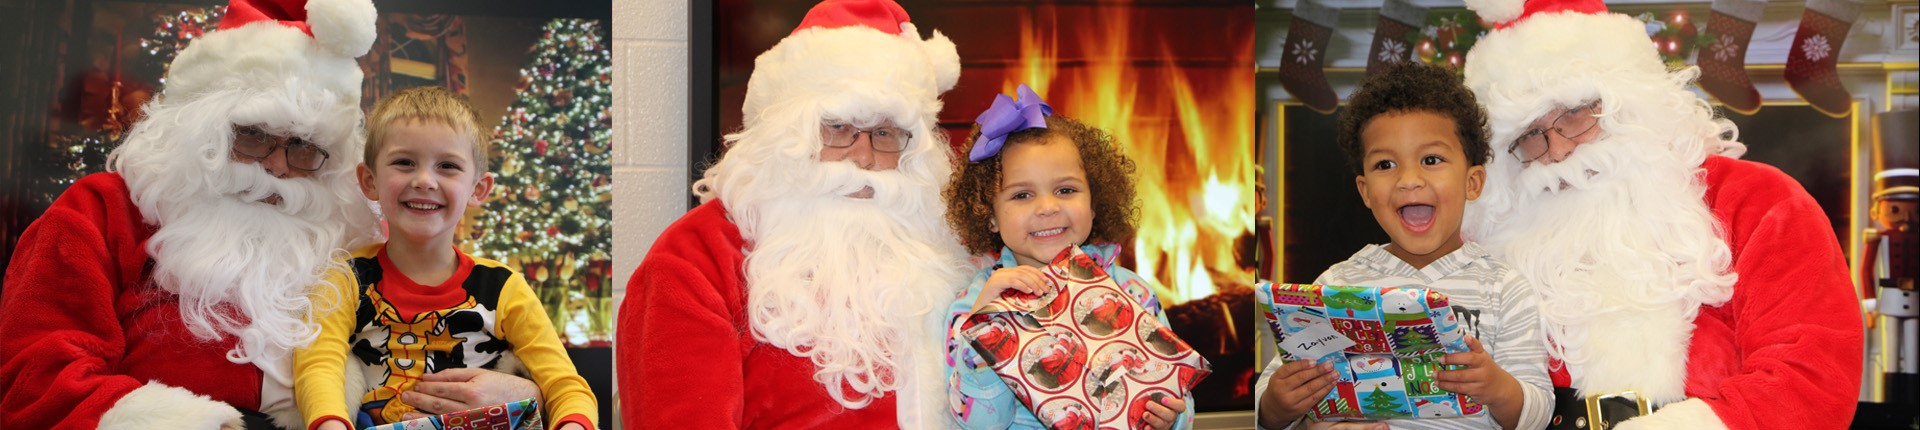 Santa spreads a little Christmas magic during his visit to Preschool Head Start.